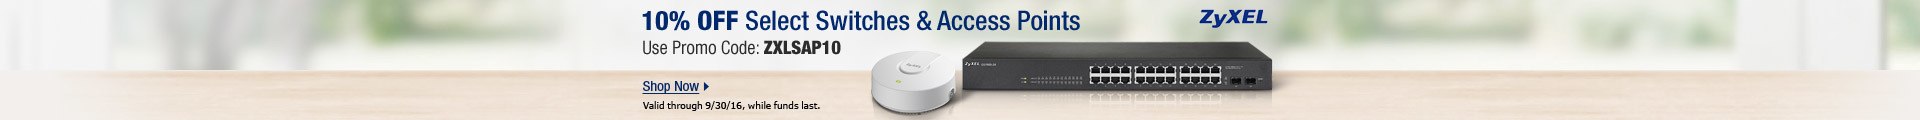 10% off select switches & access points